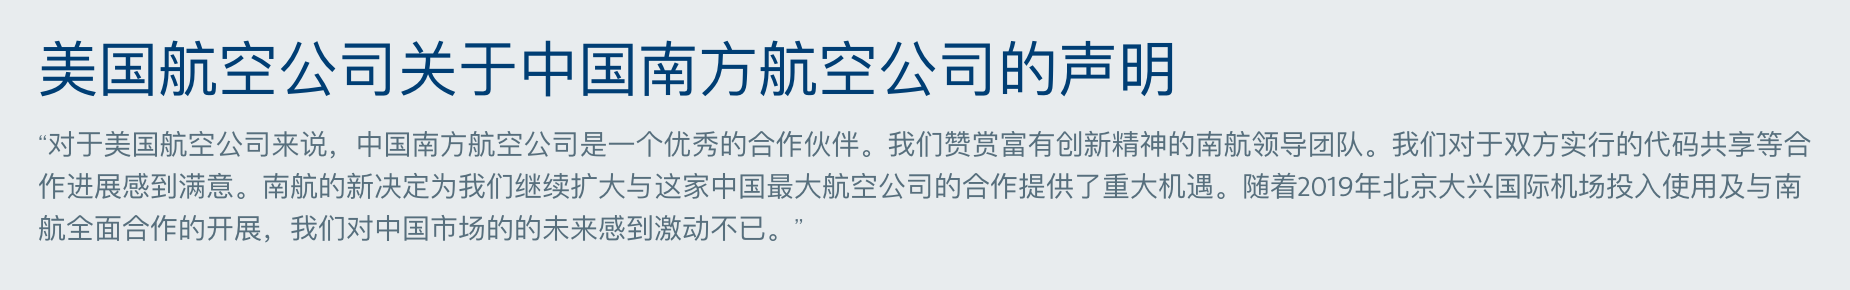 Translated statement from American Airlines on China Southern